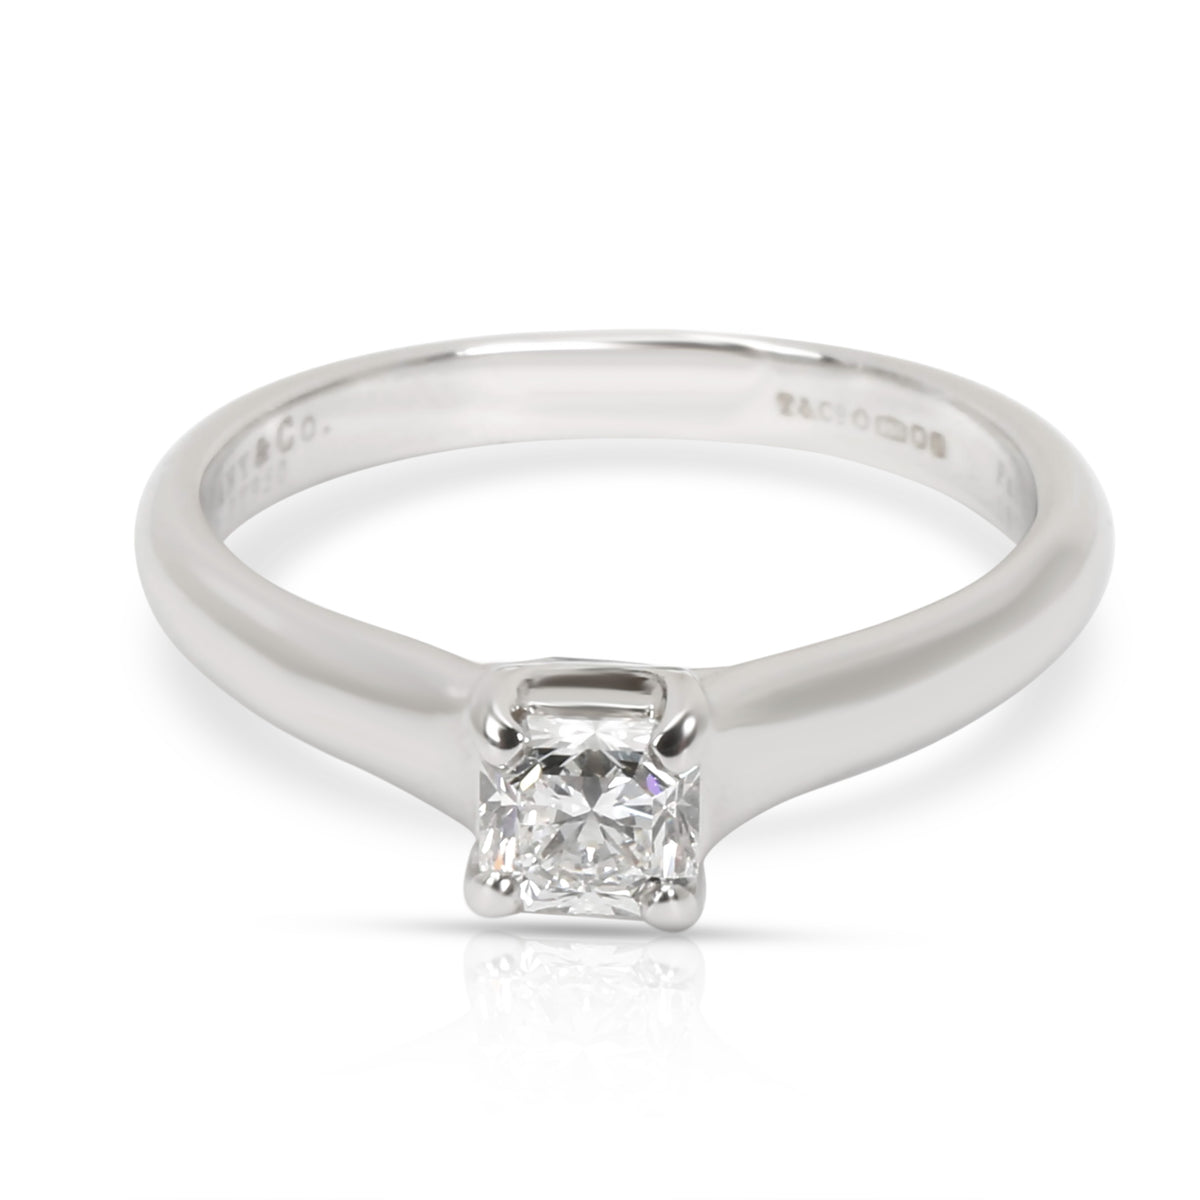 Tiffany & Co. Lucida Diamond Engagement Ring in  Platinum G VS1 0.36 CTW